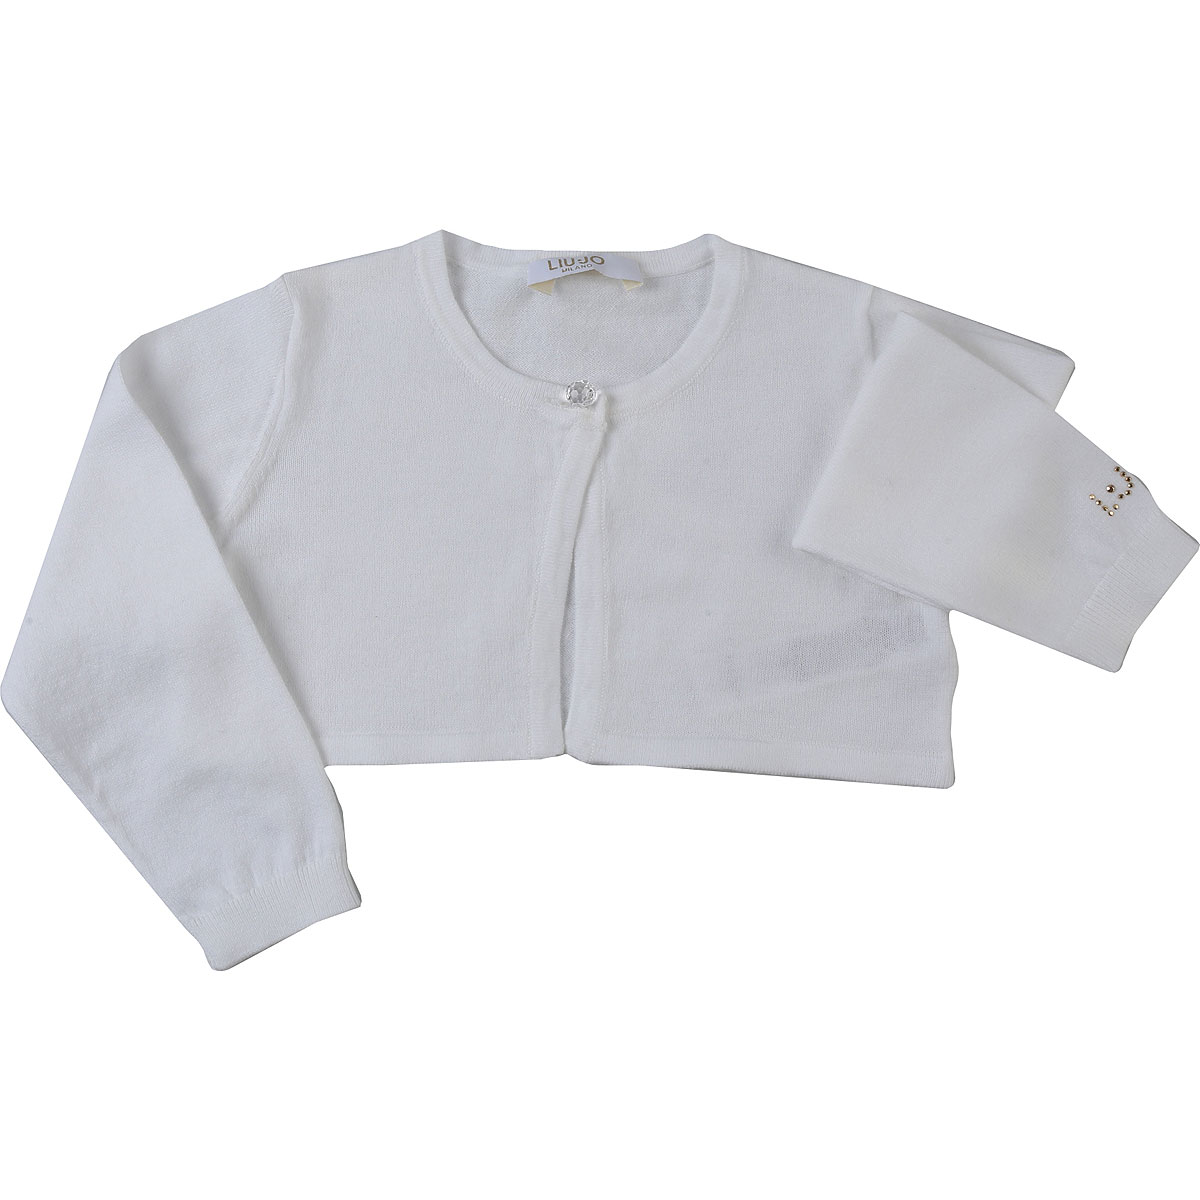 Liu Jo Baby Sweaters for Girls On Sale, White, Cotton, 2019, 12M 18M 3M 6M